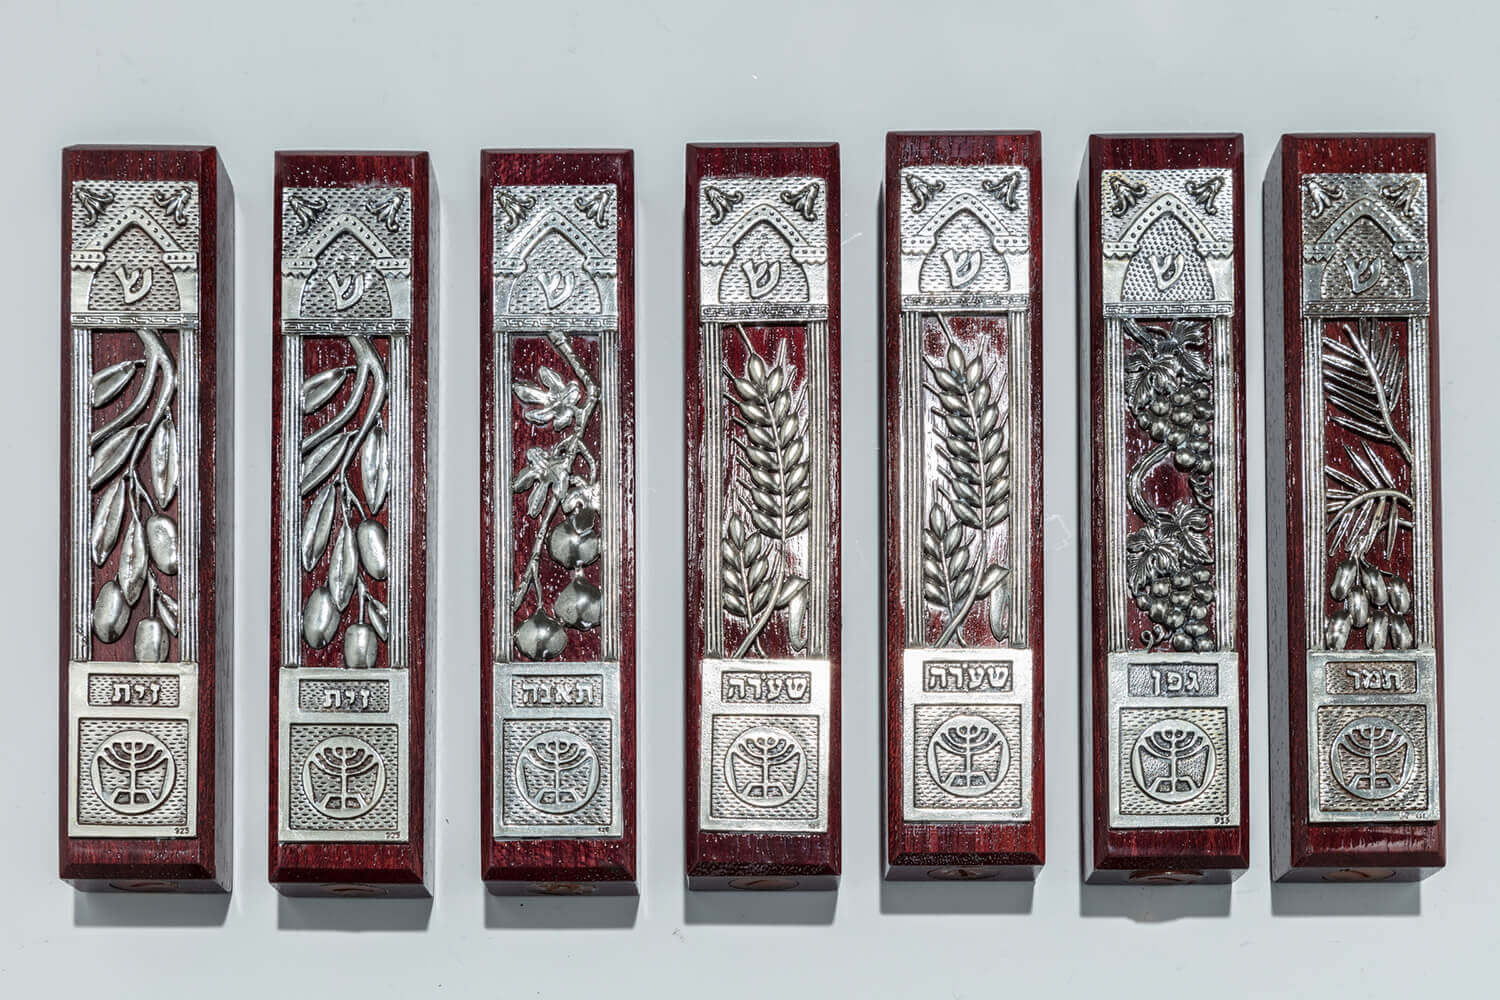 098. THE SEVEN SPECIES MEZUZAH COLLECTION BY LUVATON